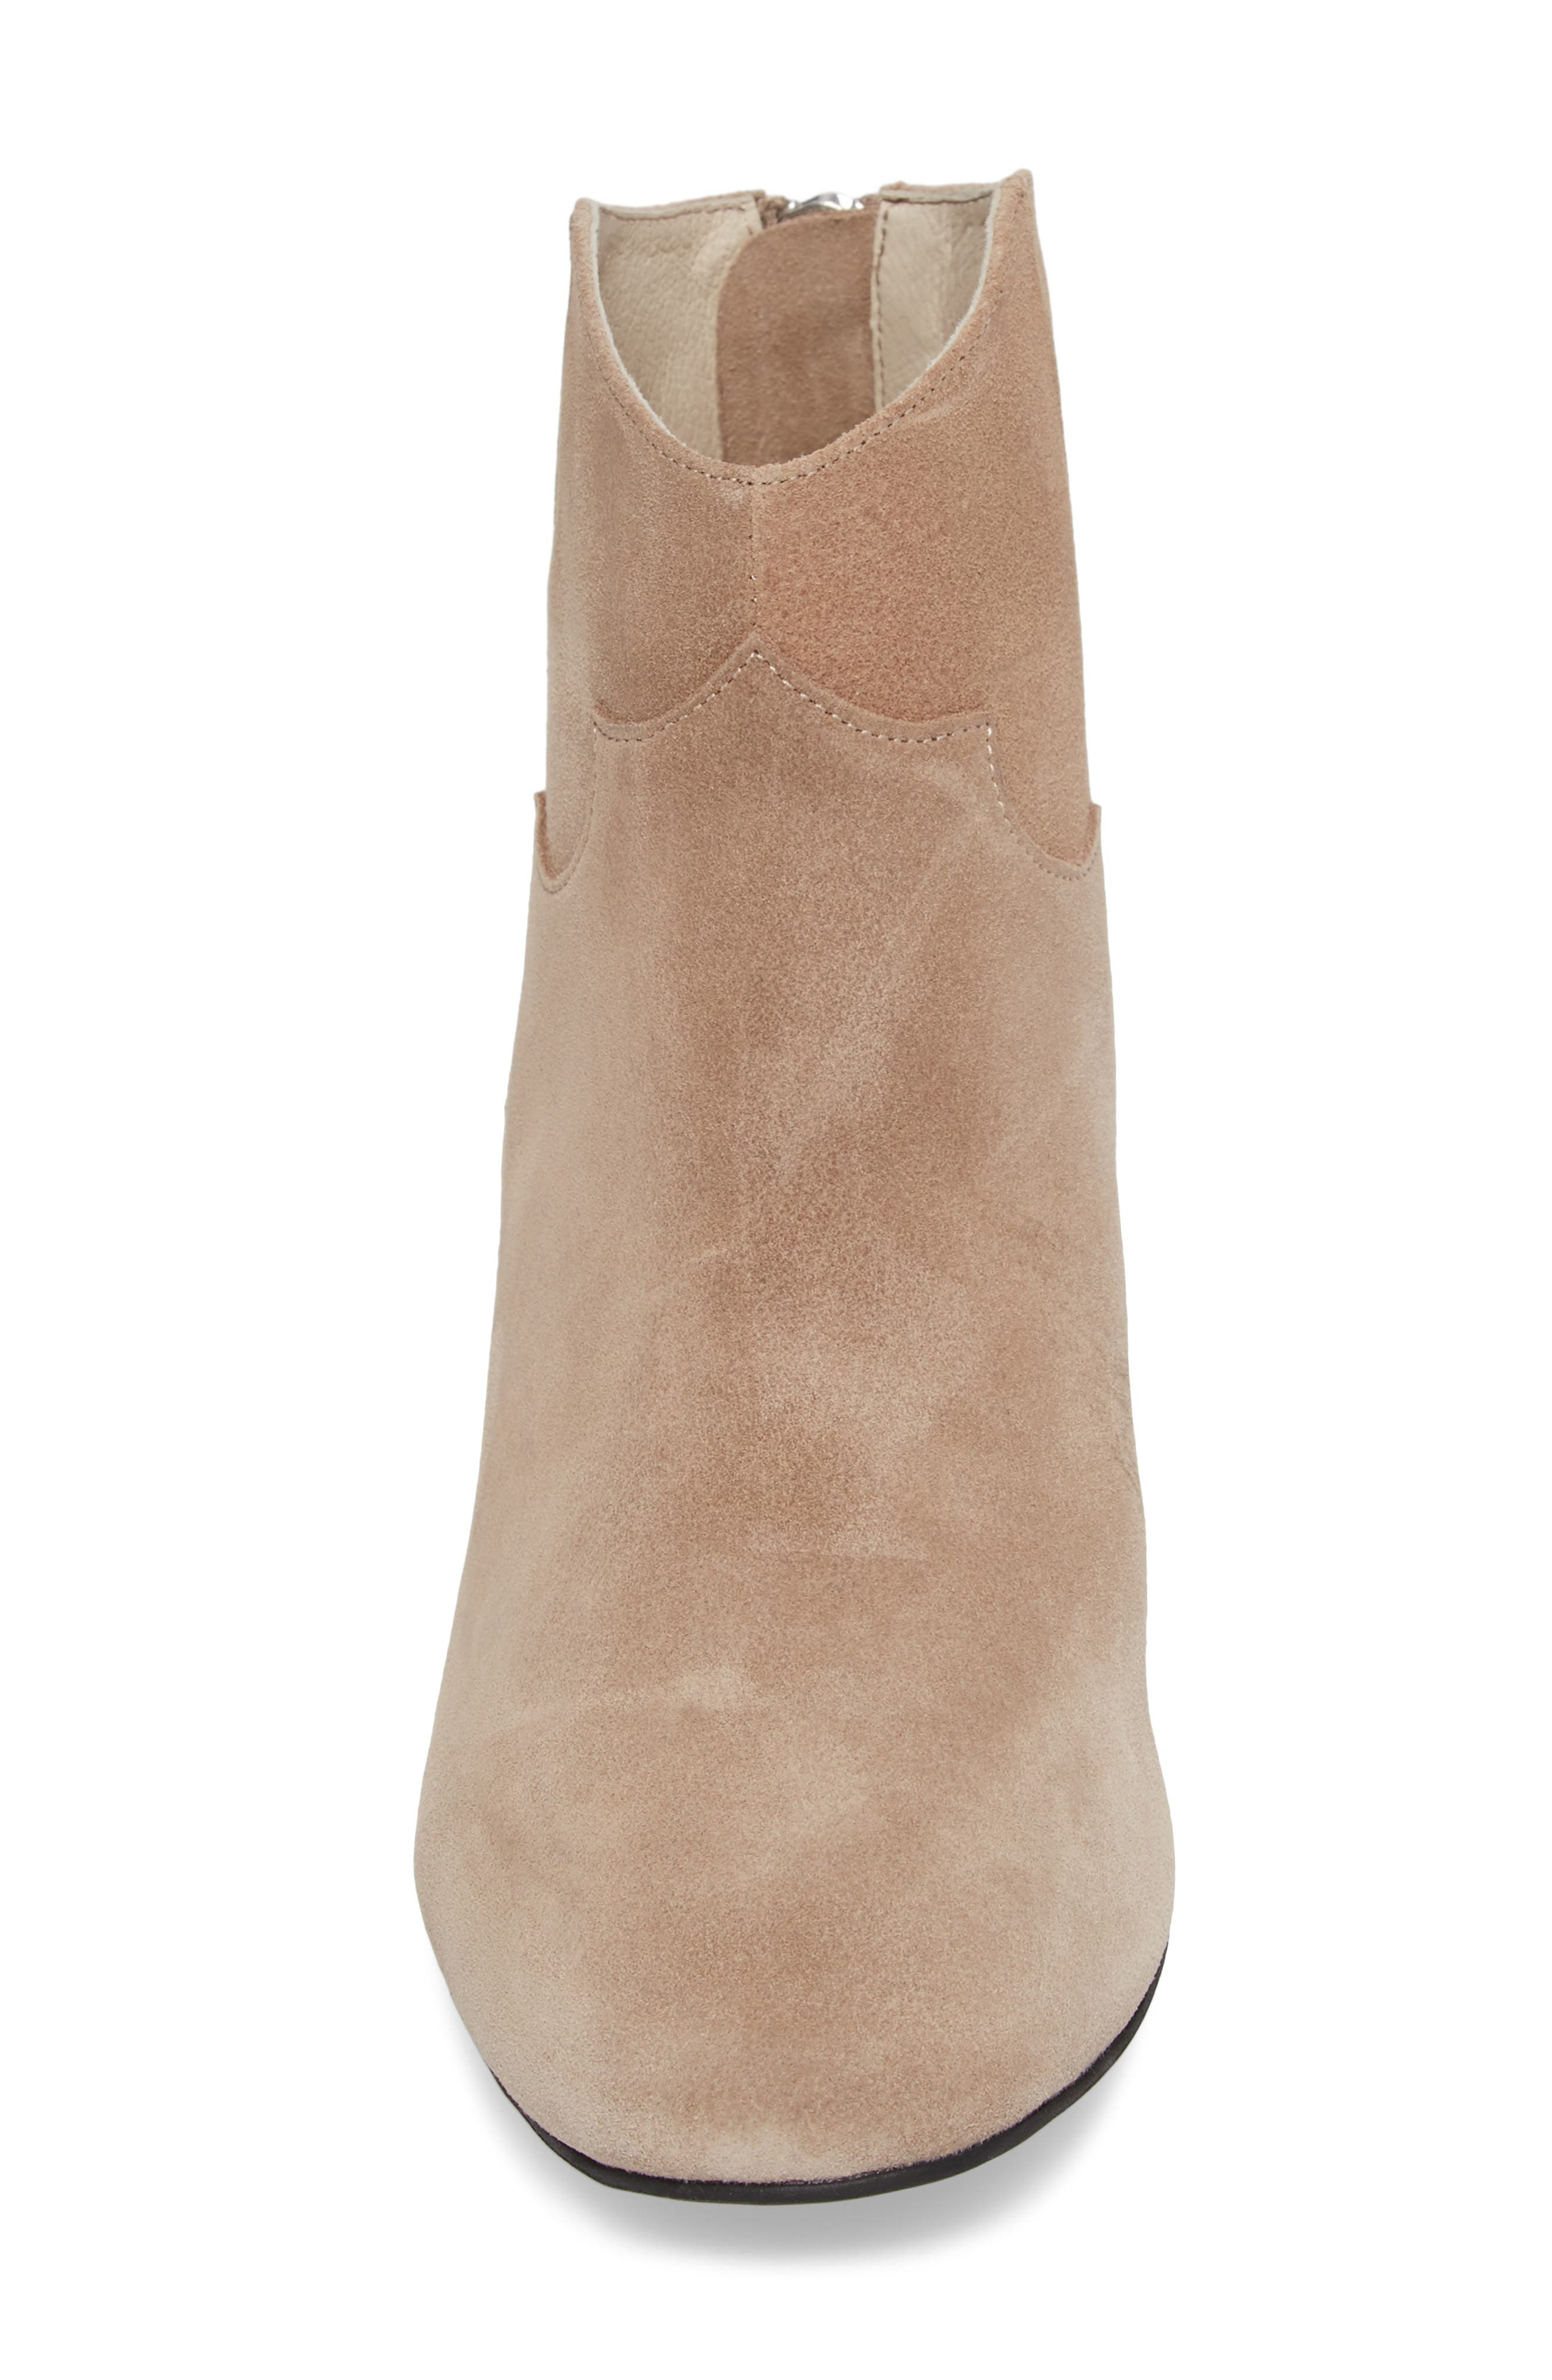 Texan Arched Bootie,                             Alternate thumbnail 4, color,                             Desert Suede